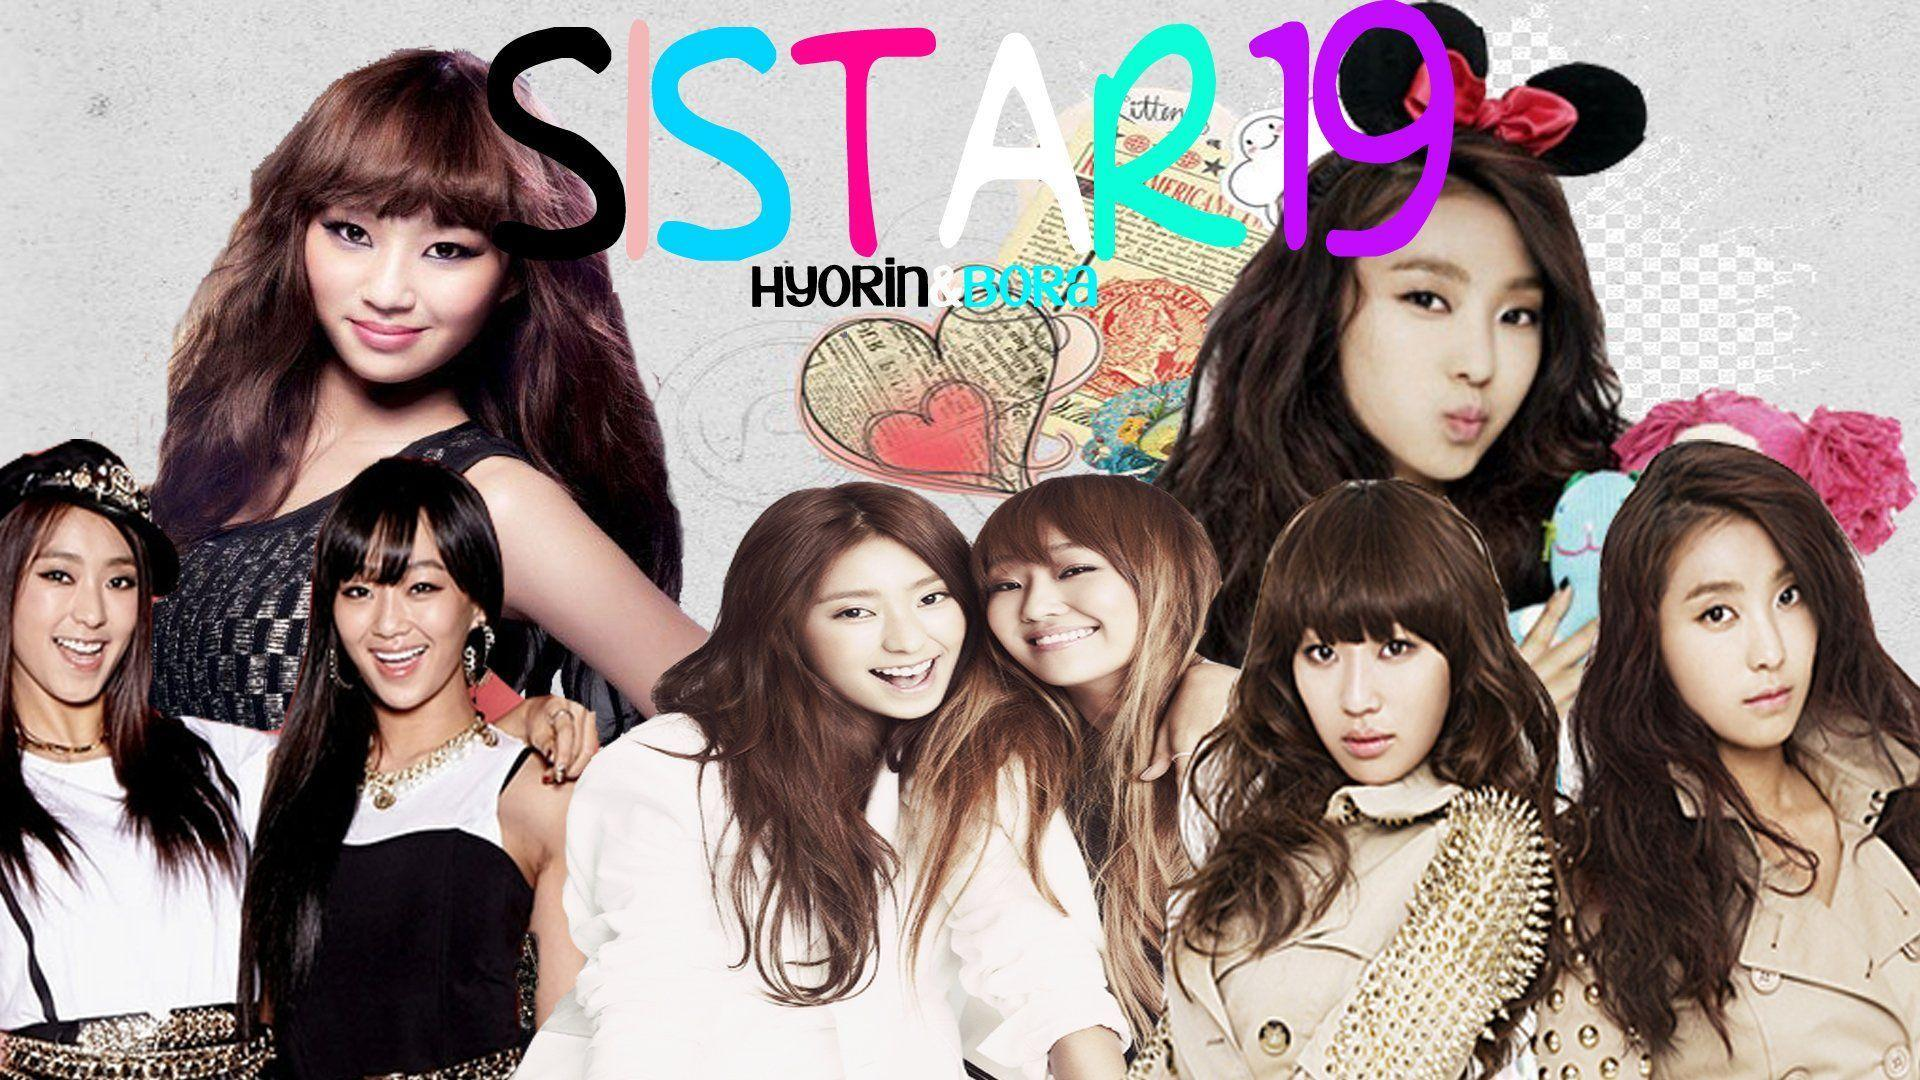 2 Sistar 19 HD Wallpapers | Backgrounds - Wallpaper Abyss